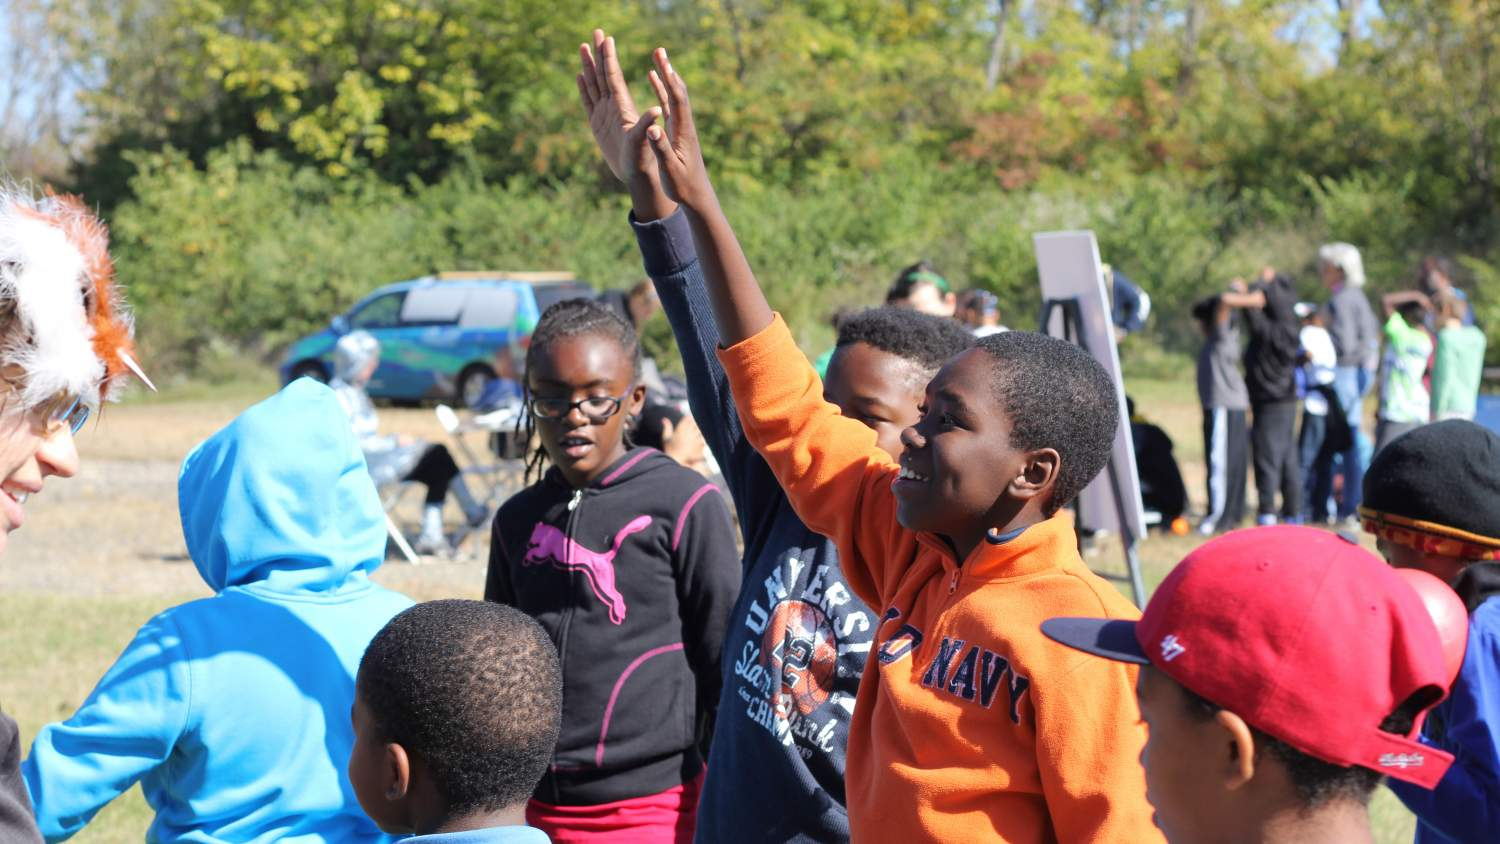 Kids raising their hands at Debris Day